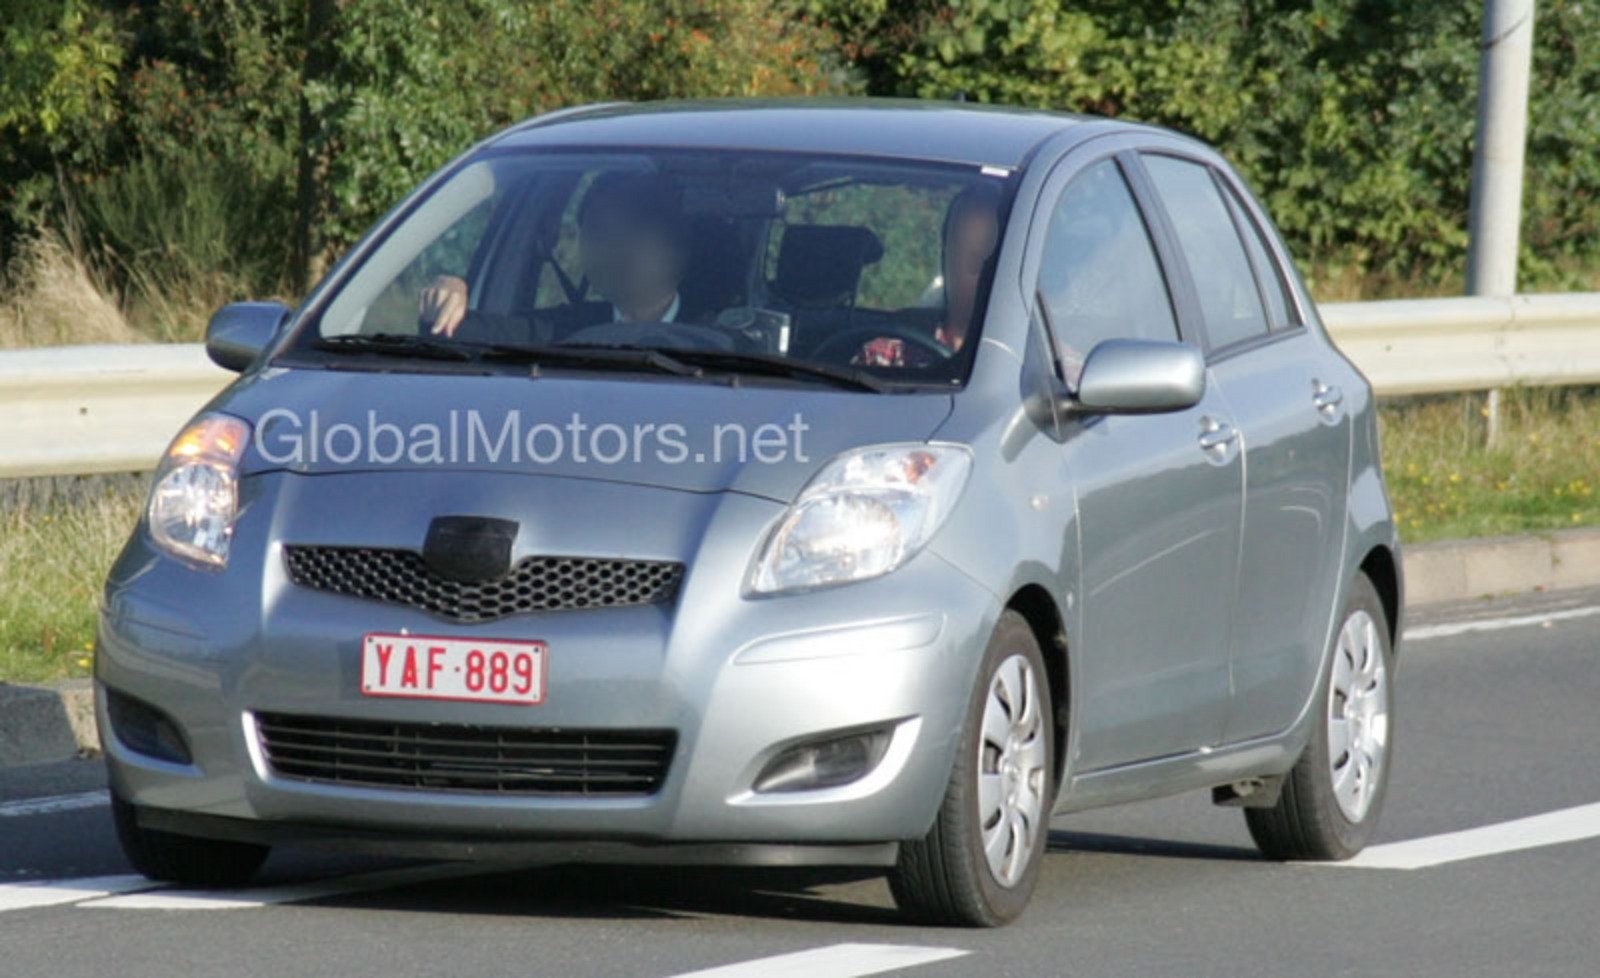 2009 toyota yaris facelift spy shots news top speed. Black Bedroom Furniture Sets. Home Design Ideas